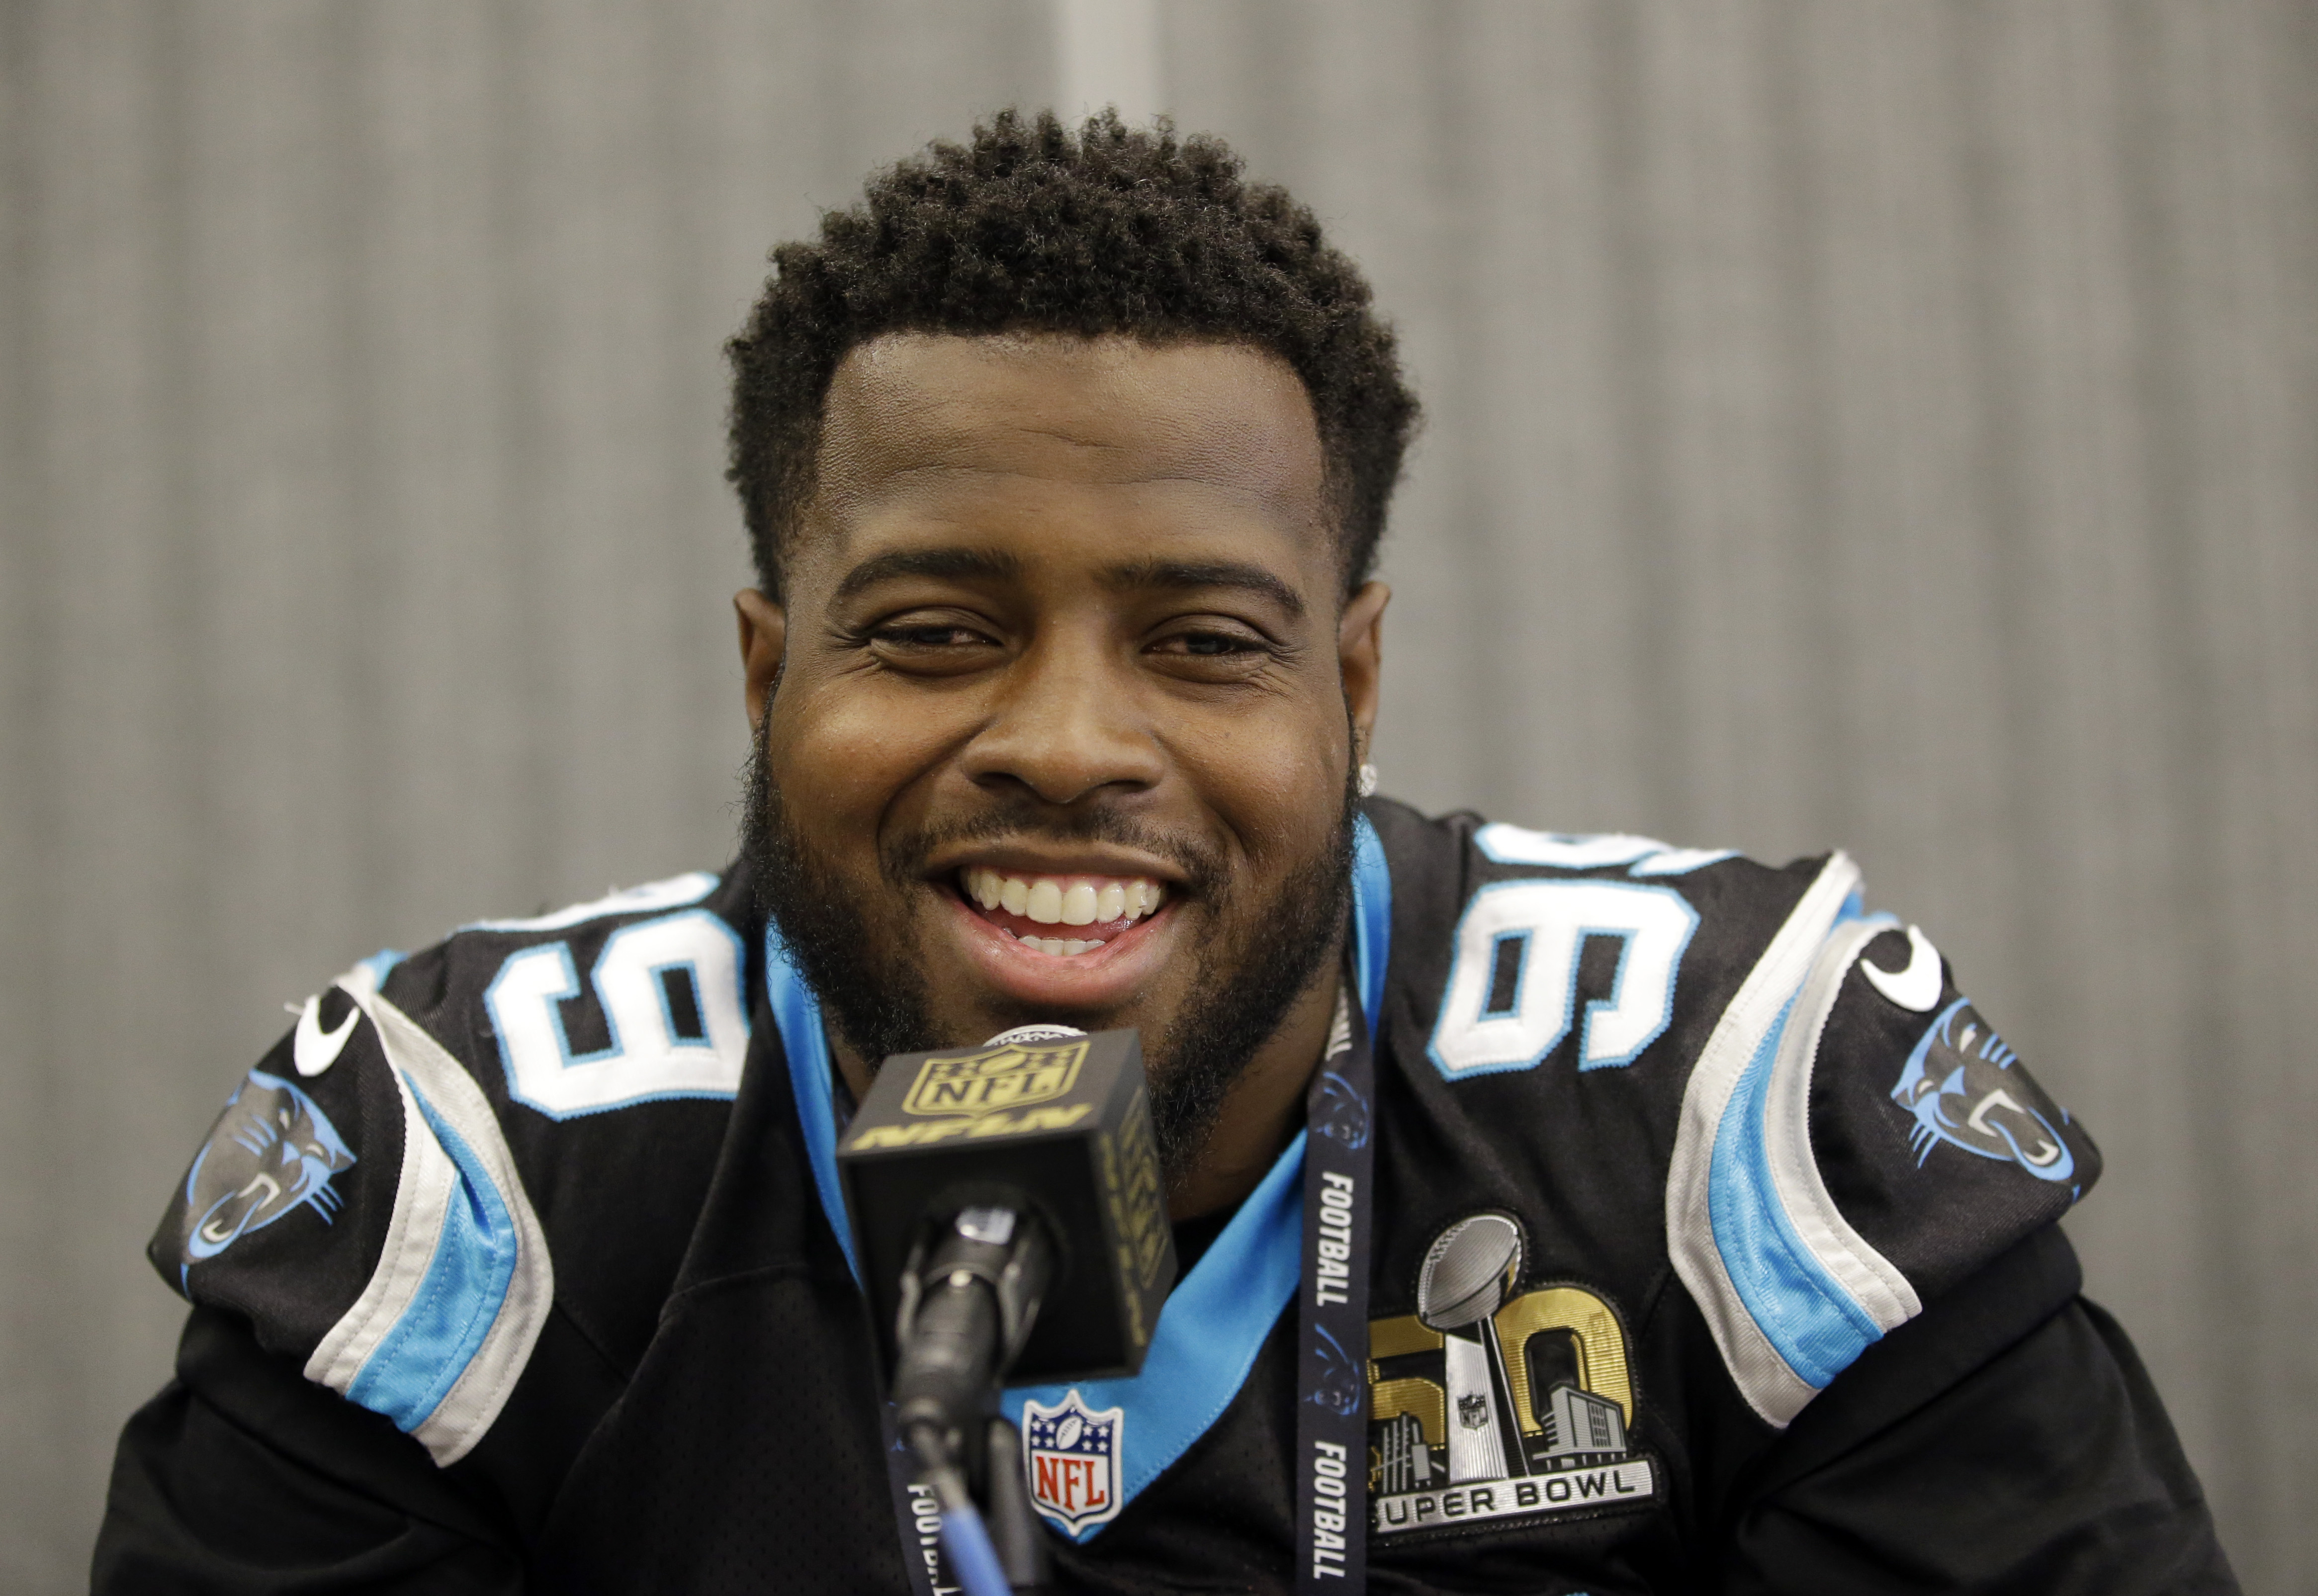 Carolina Panthers defensive tackle Kawann Short (99) answers questions during a press conference Wednesday, Feb. 3, 2016 in San Jose, Calif. Carolina plays the Denver Broncos in the NFL Super Bowl 50 football game Sunday, Feb. 7, 2015, in Santa Clara, Cal